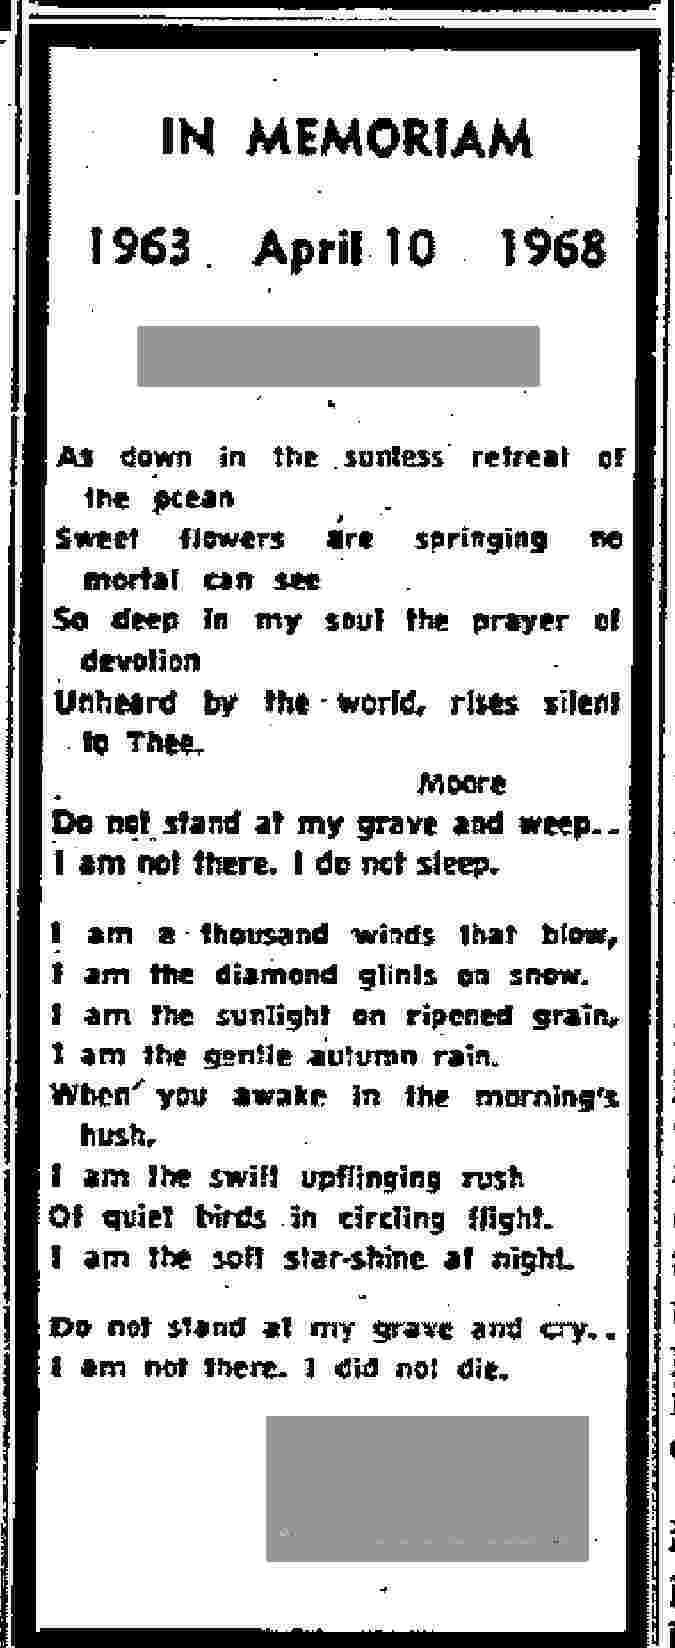 do not stand at my grave and weep - bereavement poem